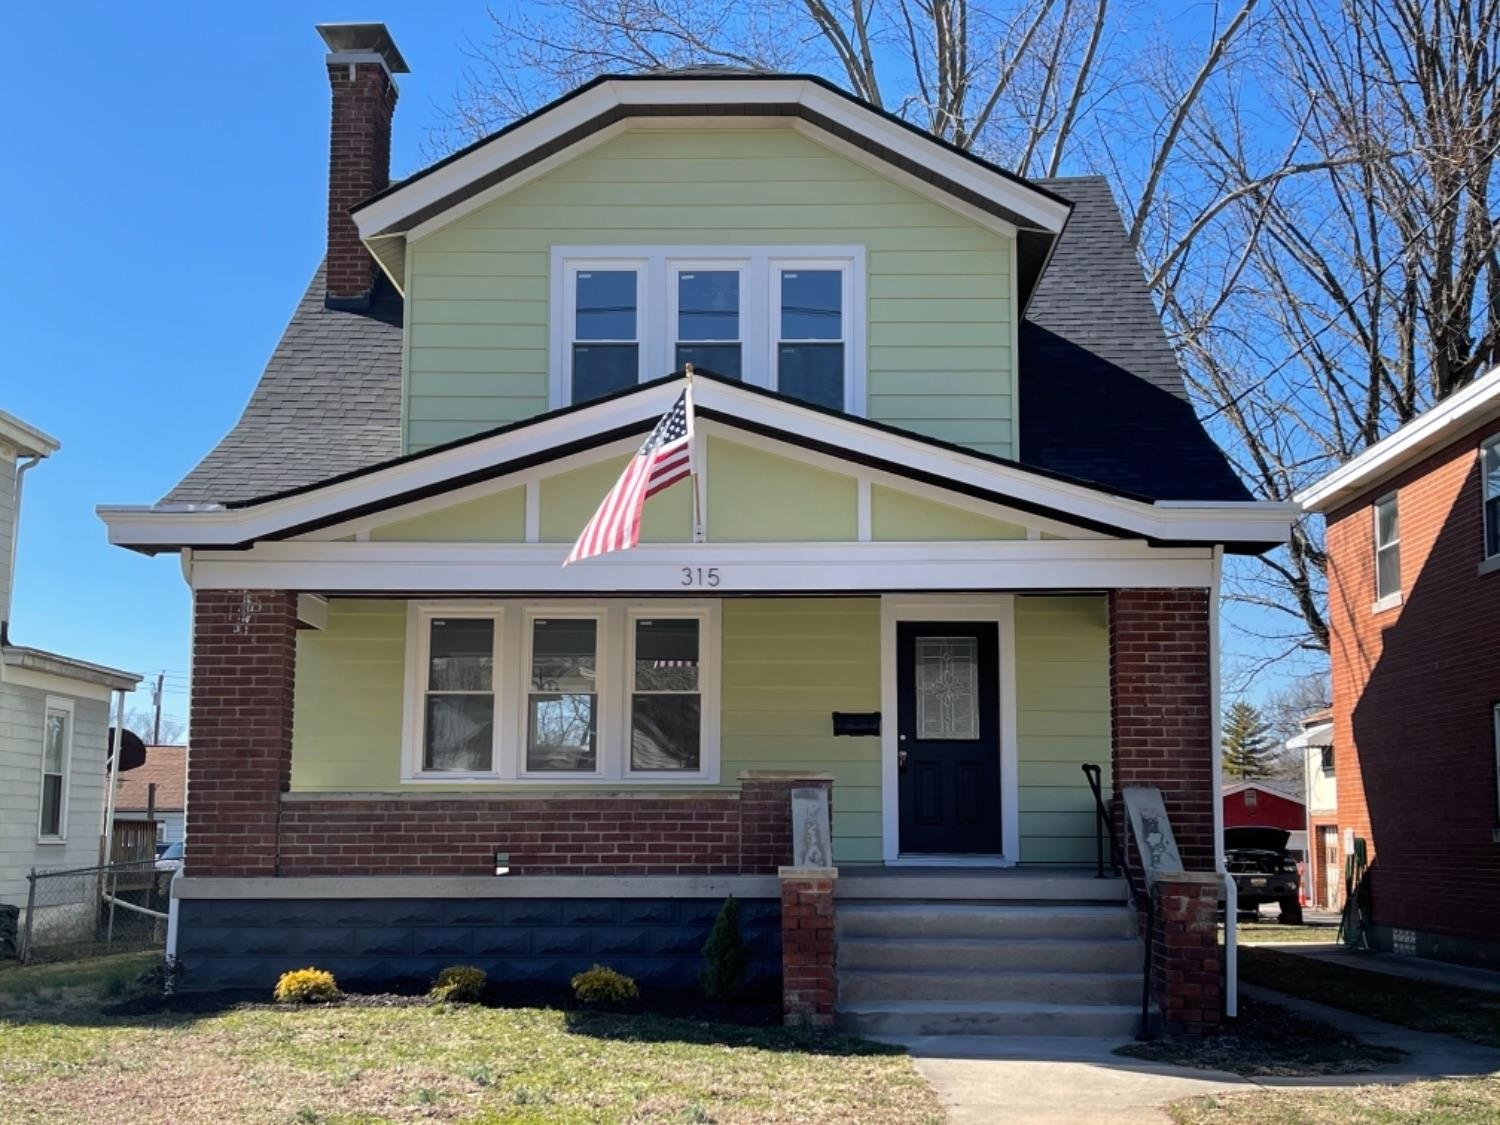 315 N Miami Avenue Cleves, OH